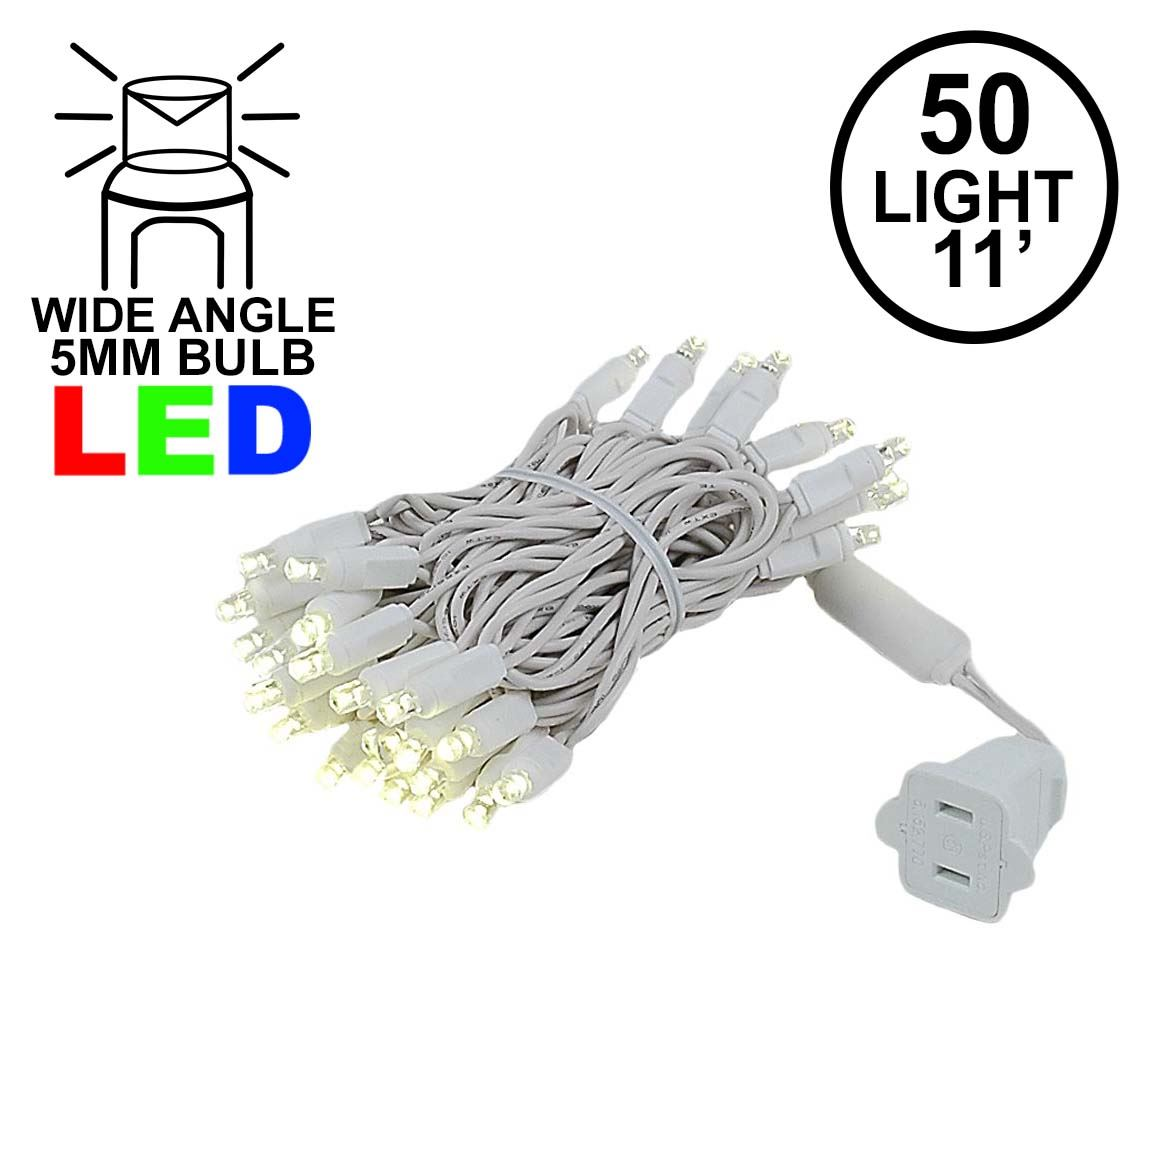 Picture of 50 LED Warm White LED Christmas Lights 11' Long on White Wire